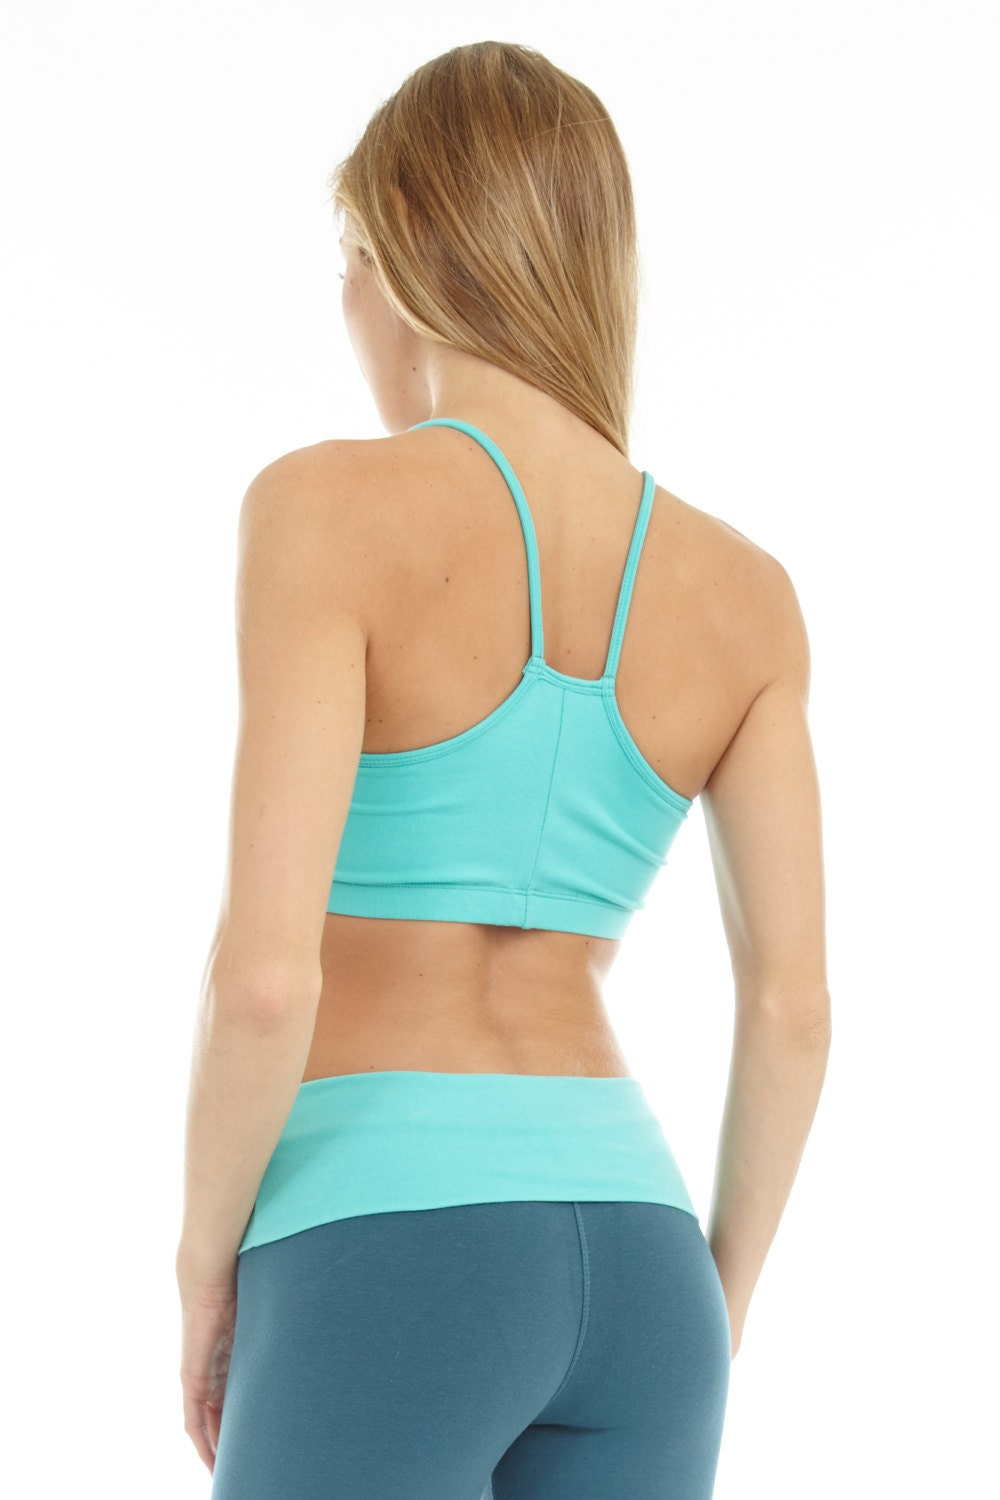 Women's sports bras designed to support your sweatiest ambitions. Stay covered and keep comfortable with four-way stretch fabrics. Free shipping and returns.